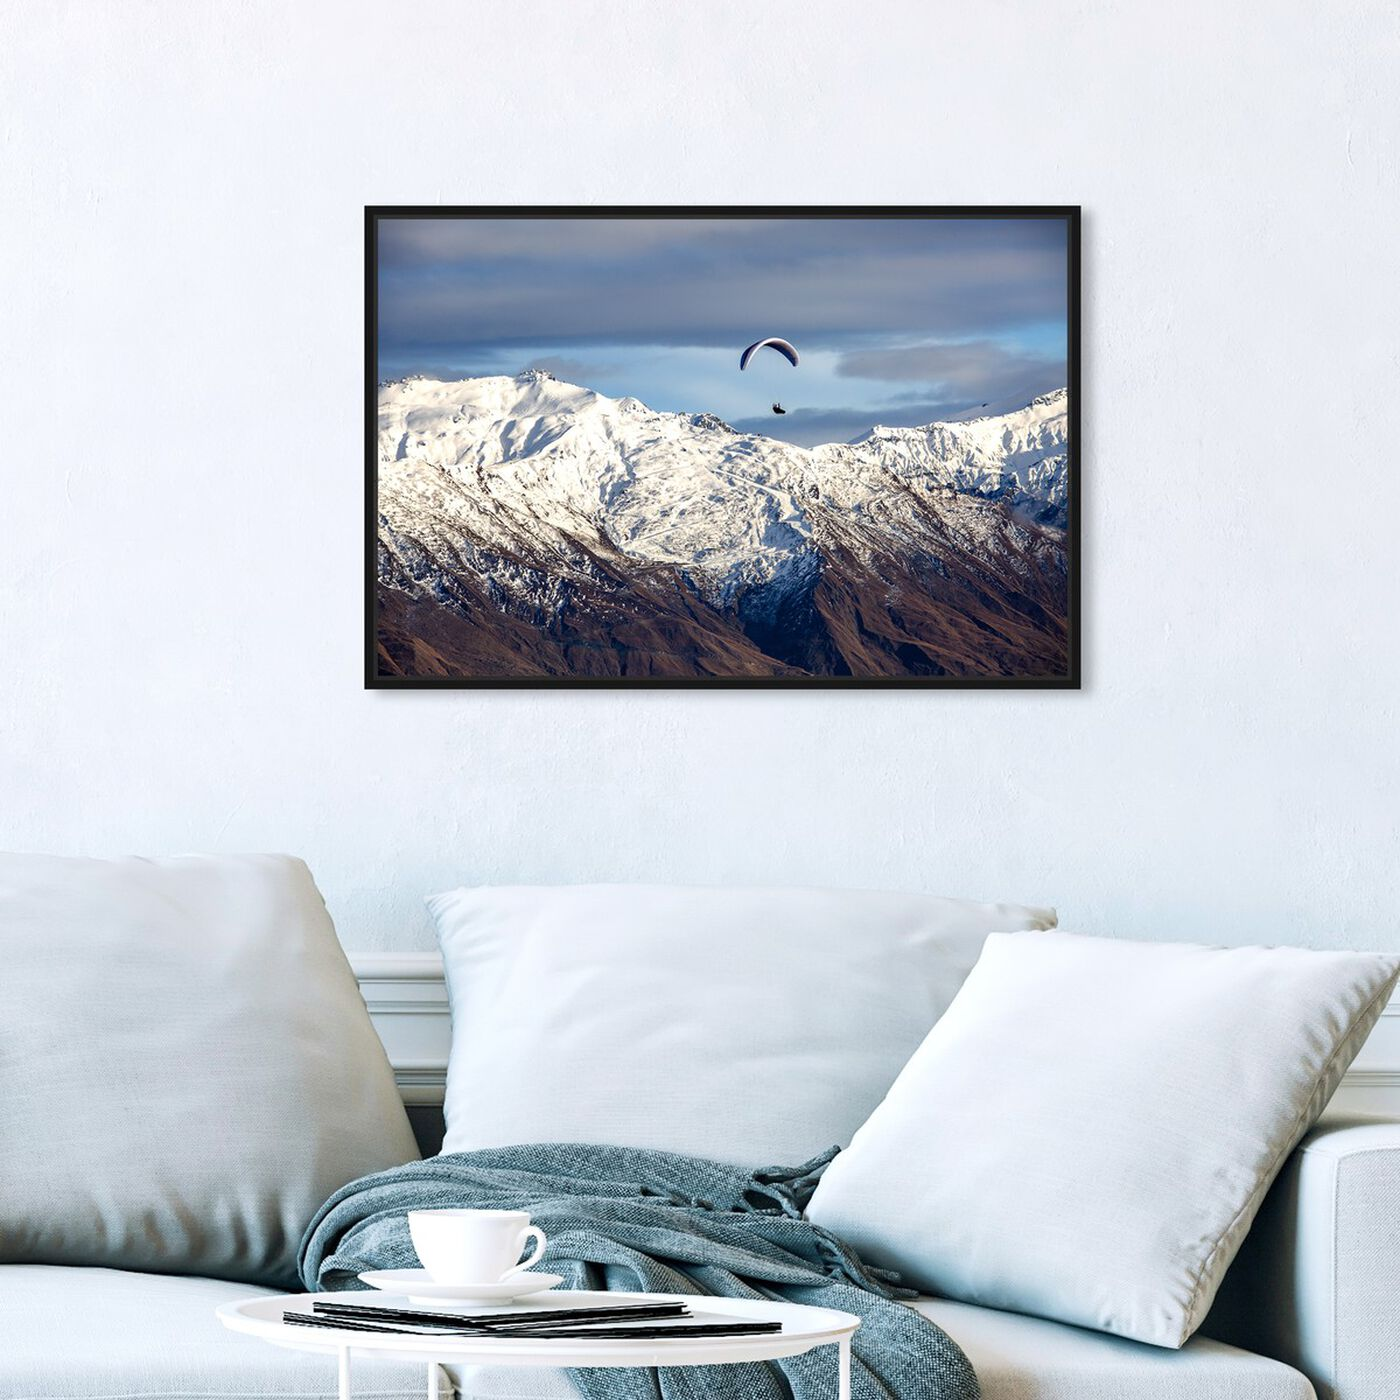 Hanging view of Curro Cardenal - Paragliding Free featuring nature and landscape and mountains art.